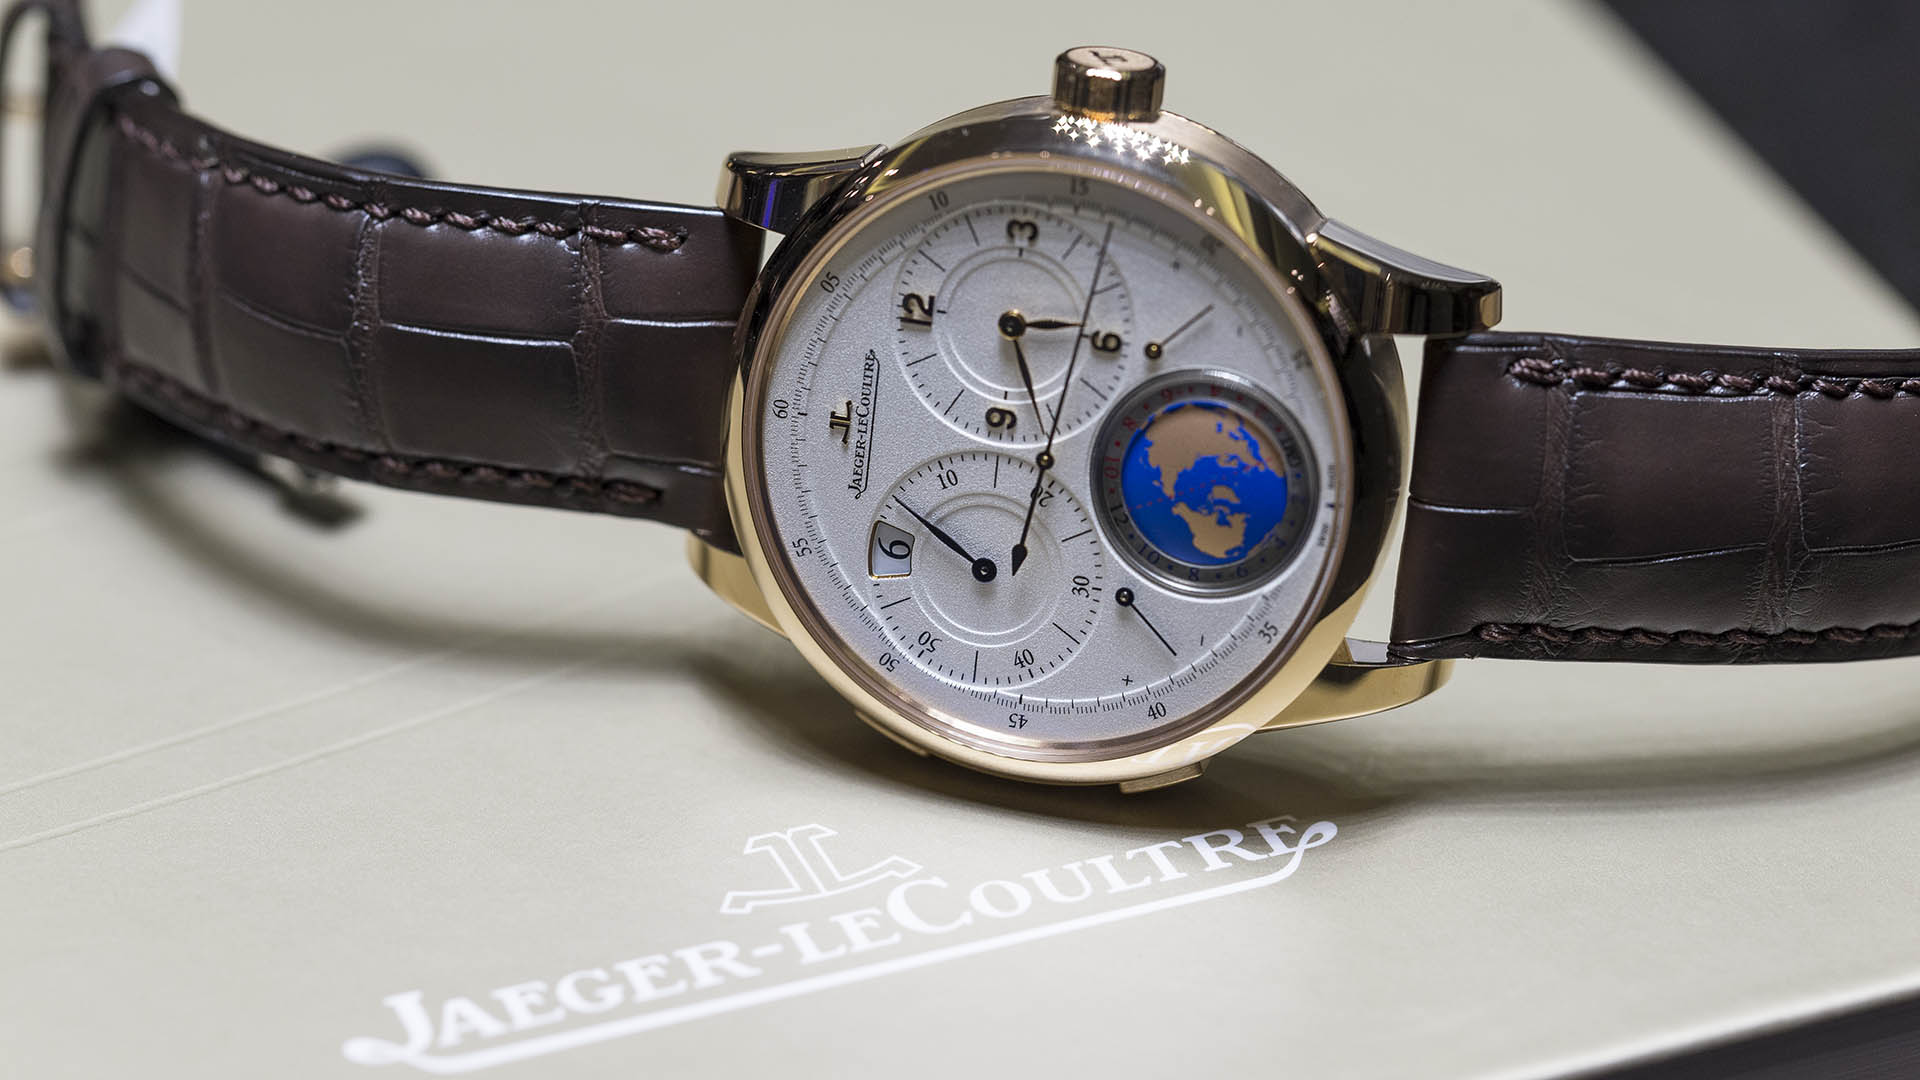 Jaeger-LeCoultre_Duome-tre_Unique_Travel_Time_6s.jpg